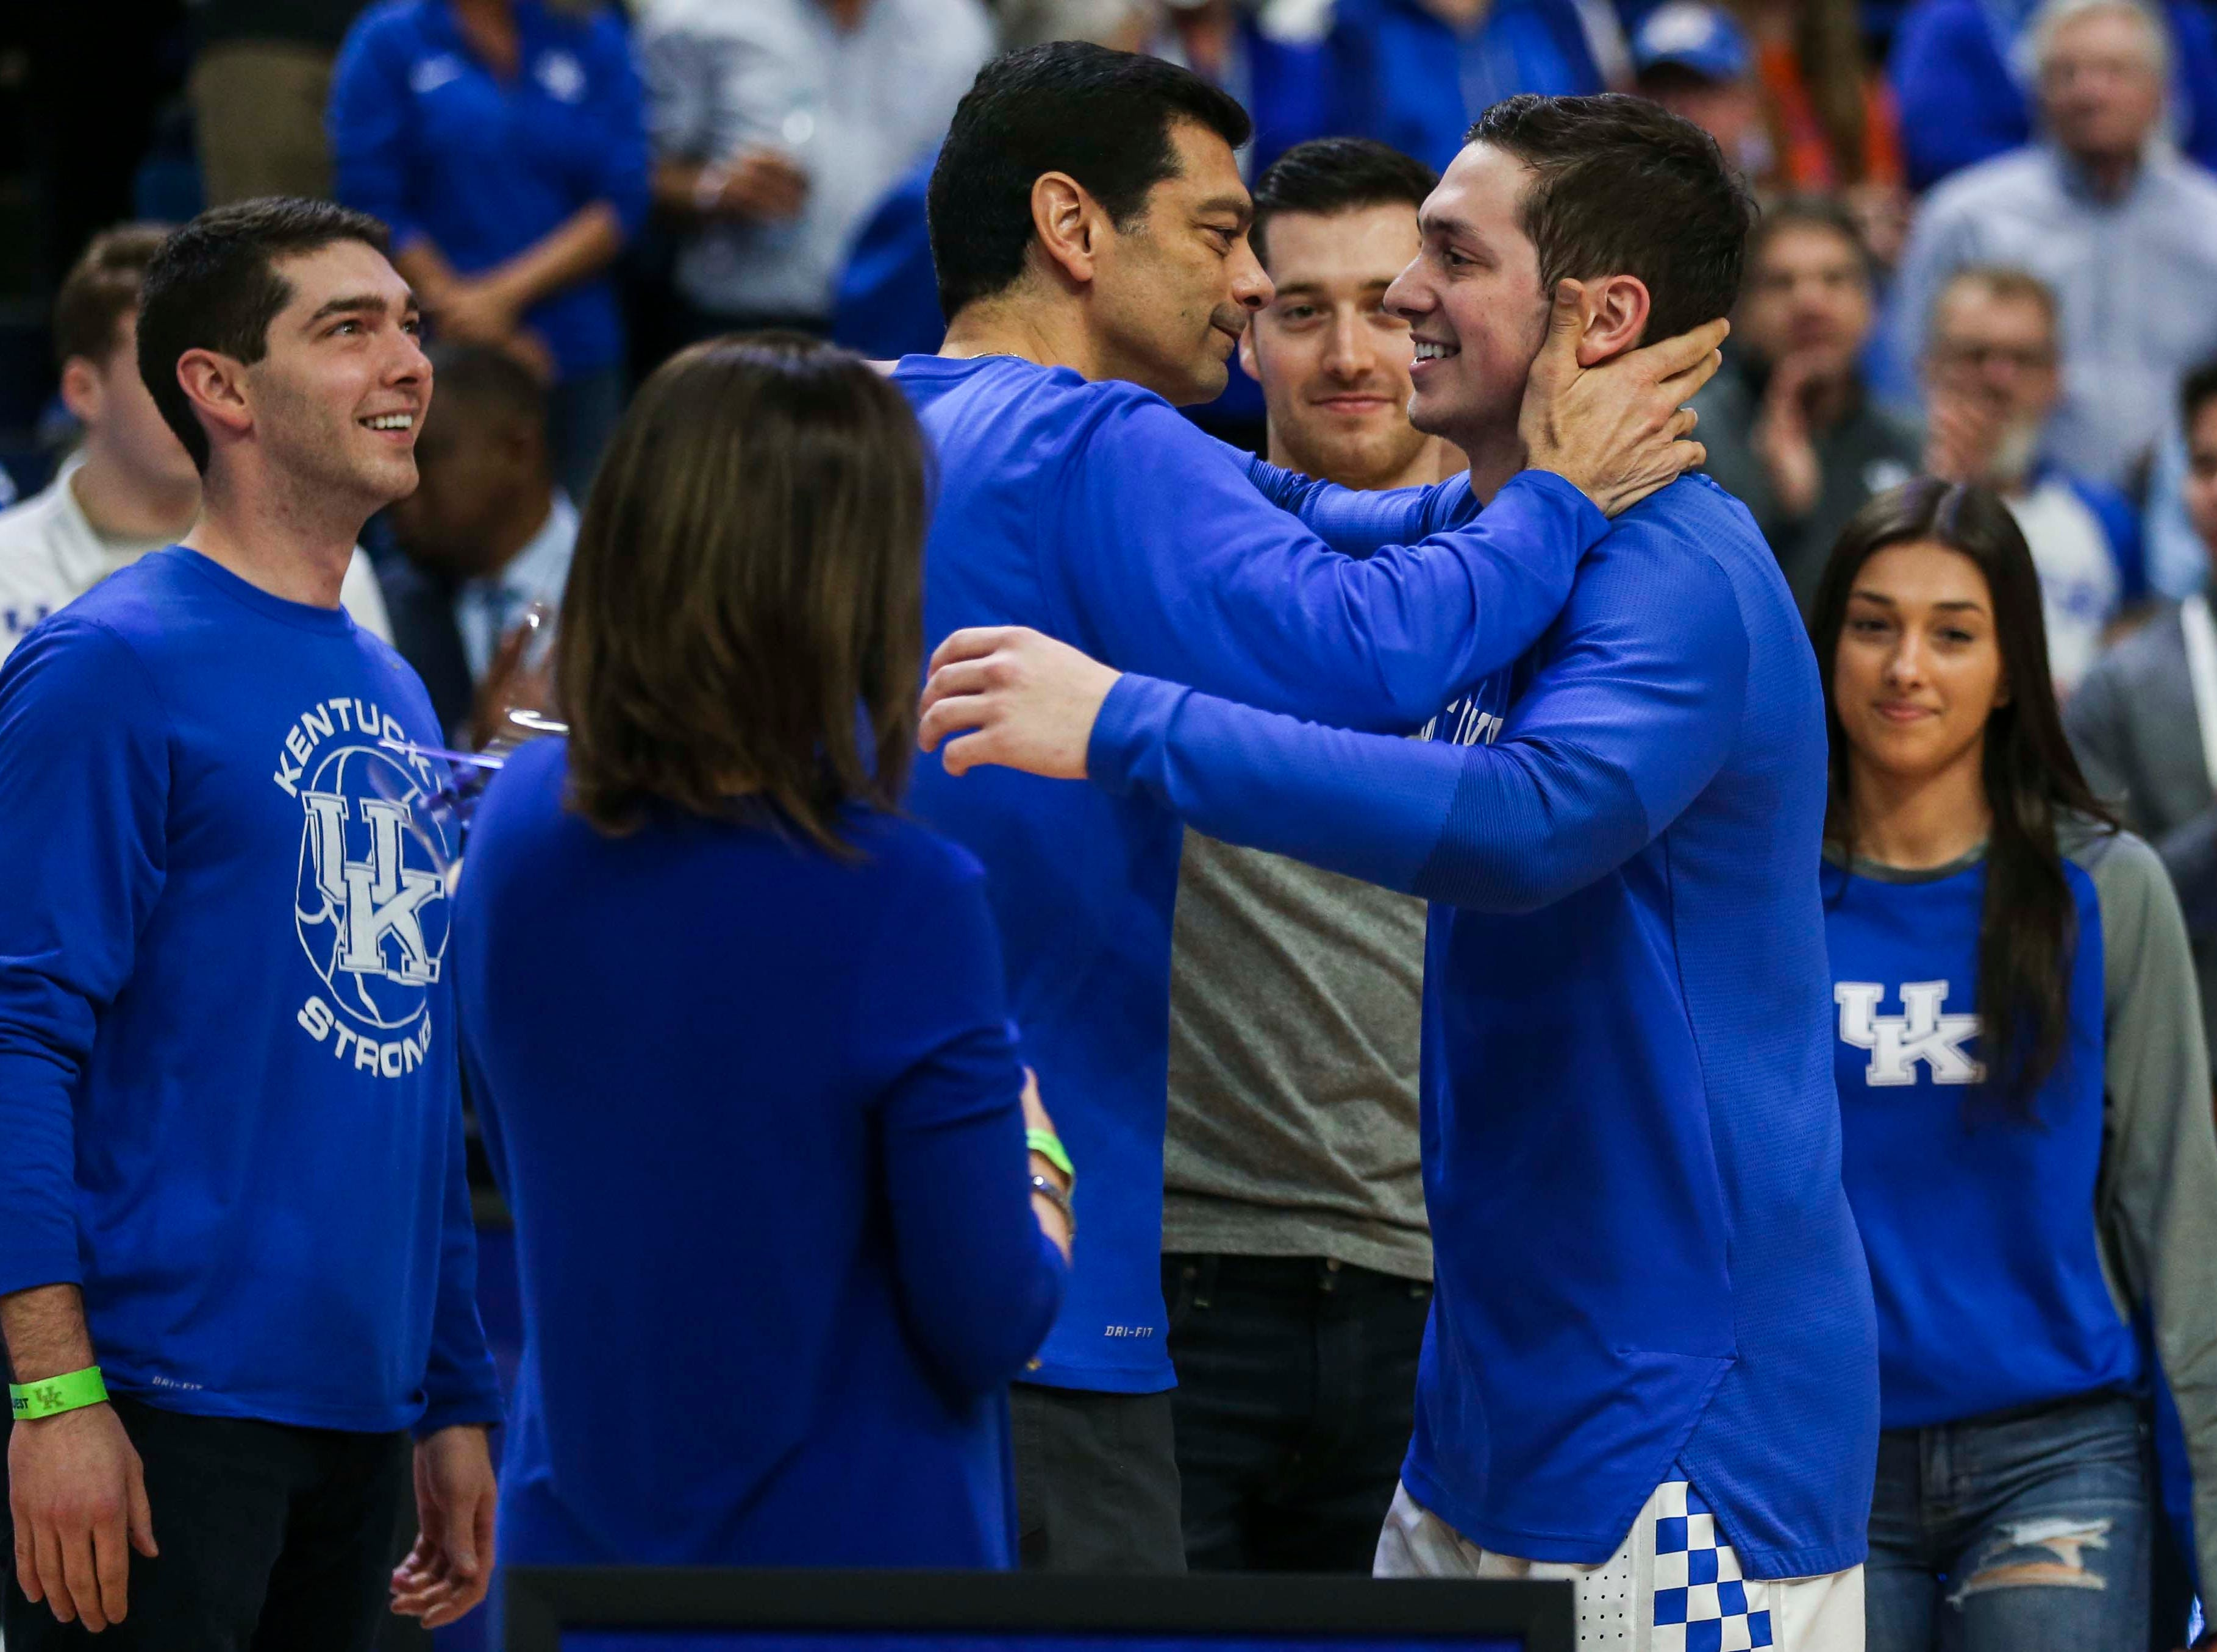 Kentucky's Jonny David was honored on Senior Day before the game against Florida. March 9, 2019